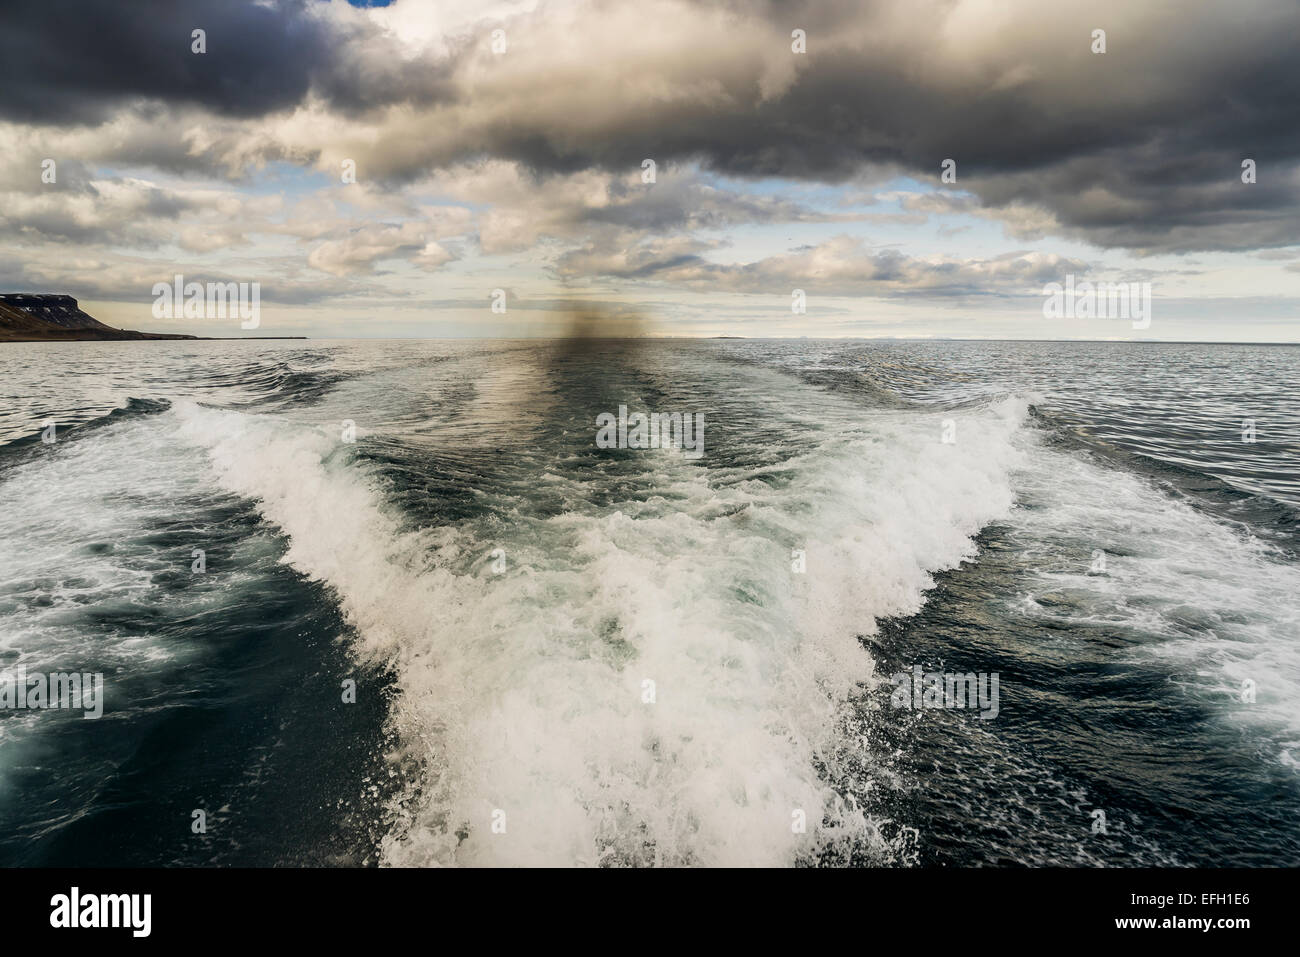 Waves and wake from speed boat, North Atlantic Ocean, Iceland - Stock Image